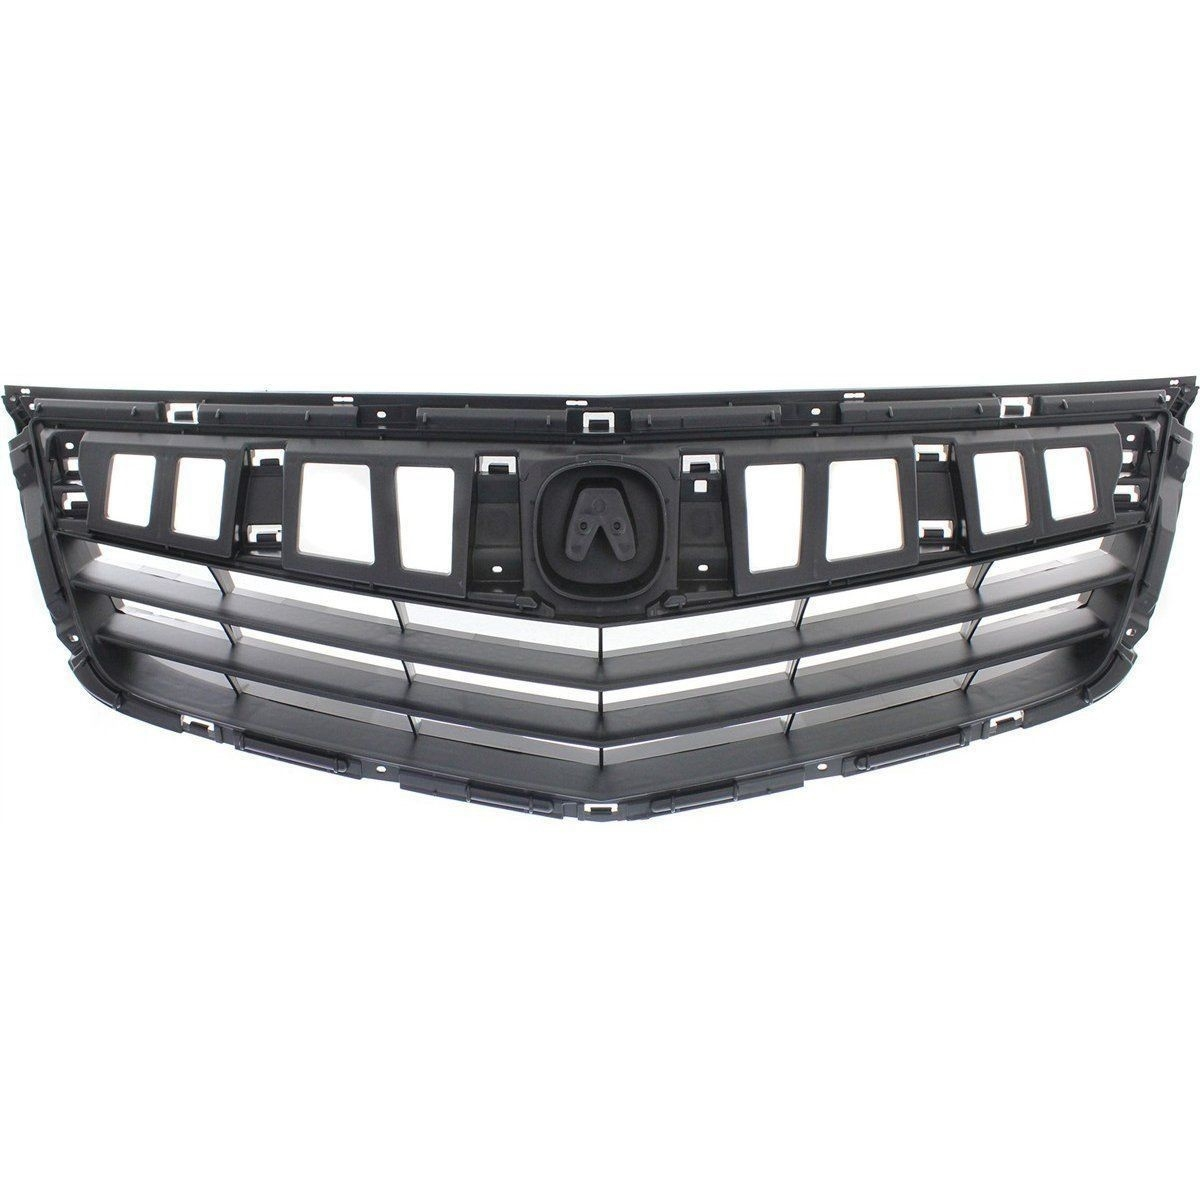 New Grille Matte Black Plastic Front For Acura TSX 2011